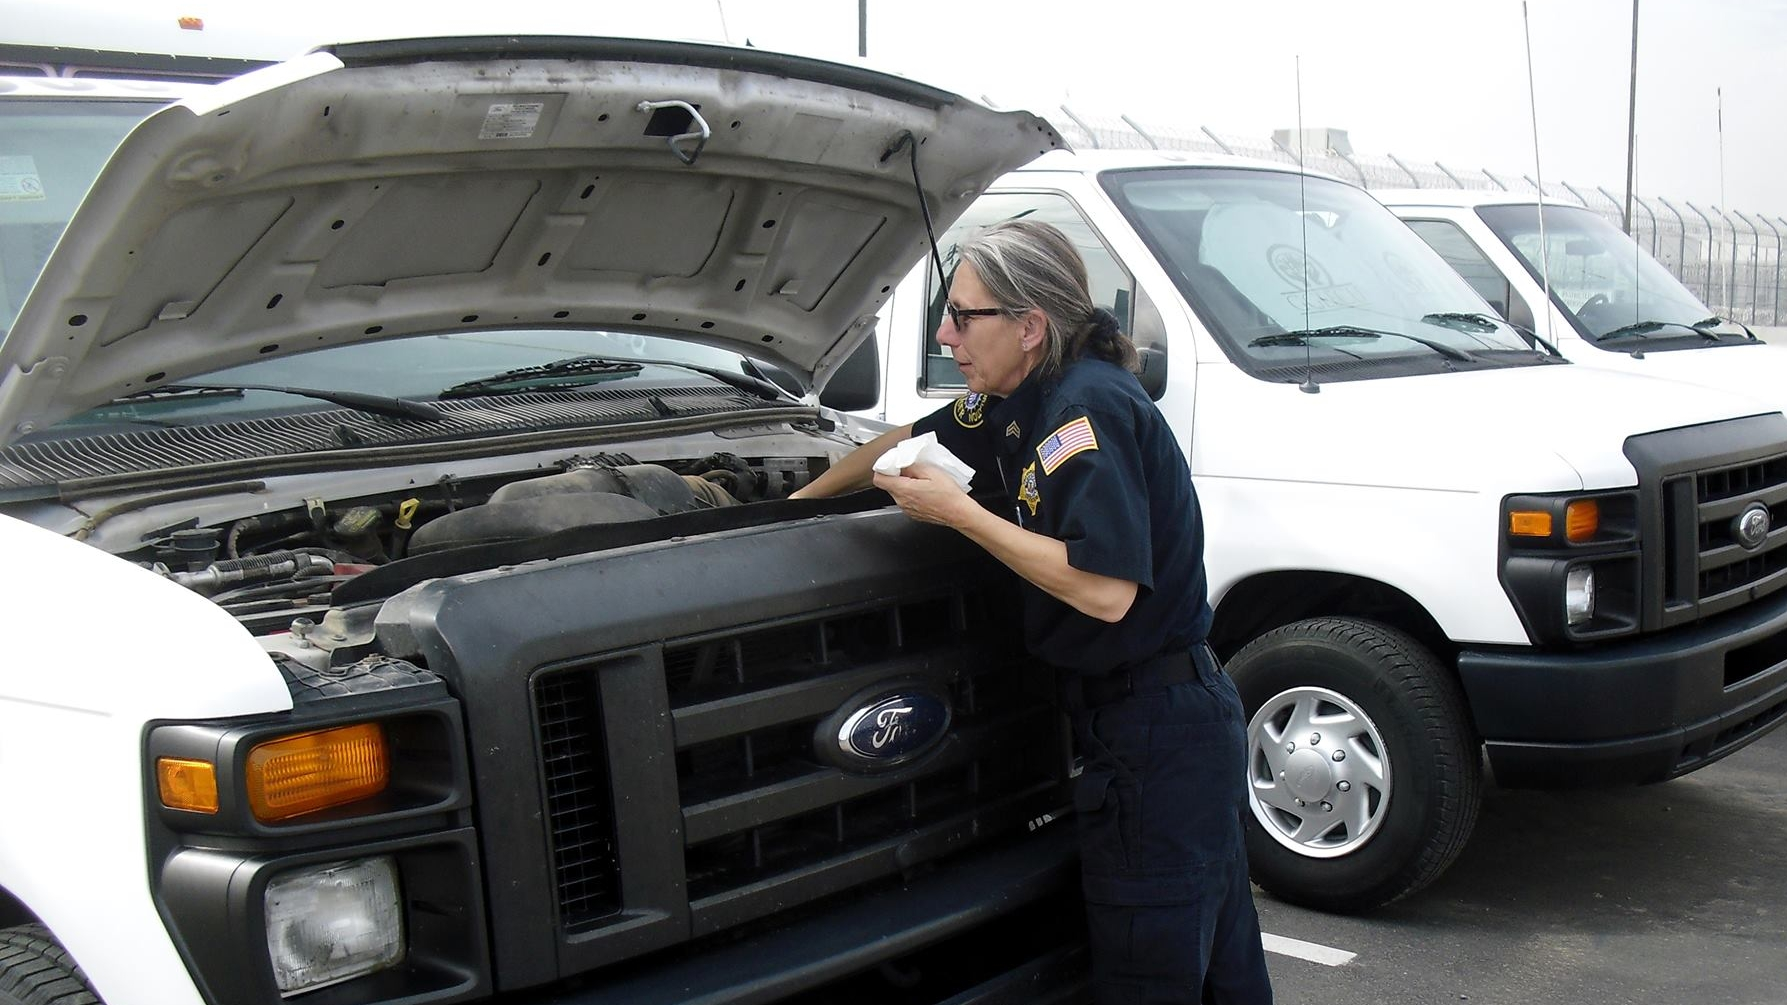 Staff are trained in all aspects of their duties, from security to vehicle inspection.